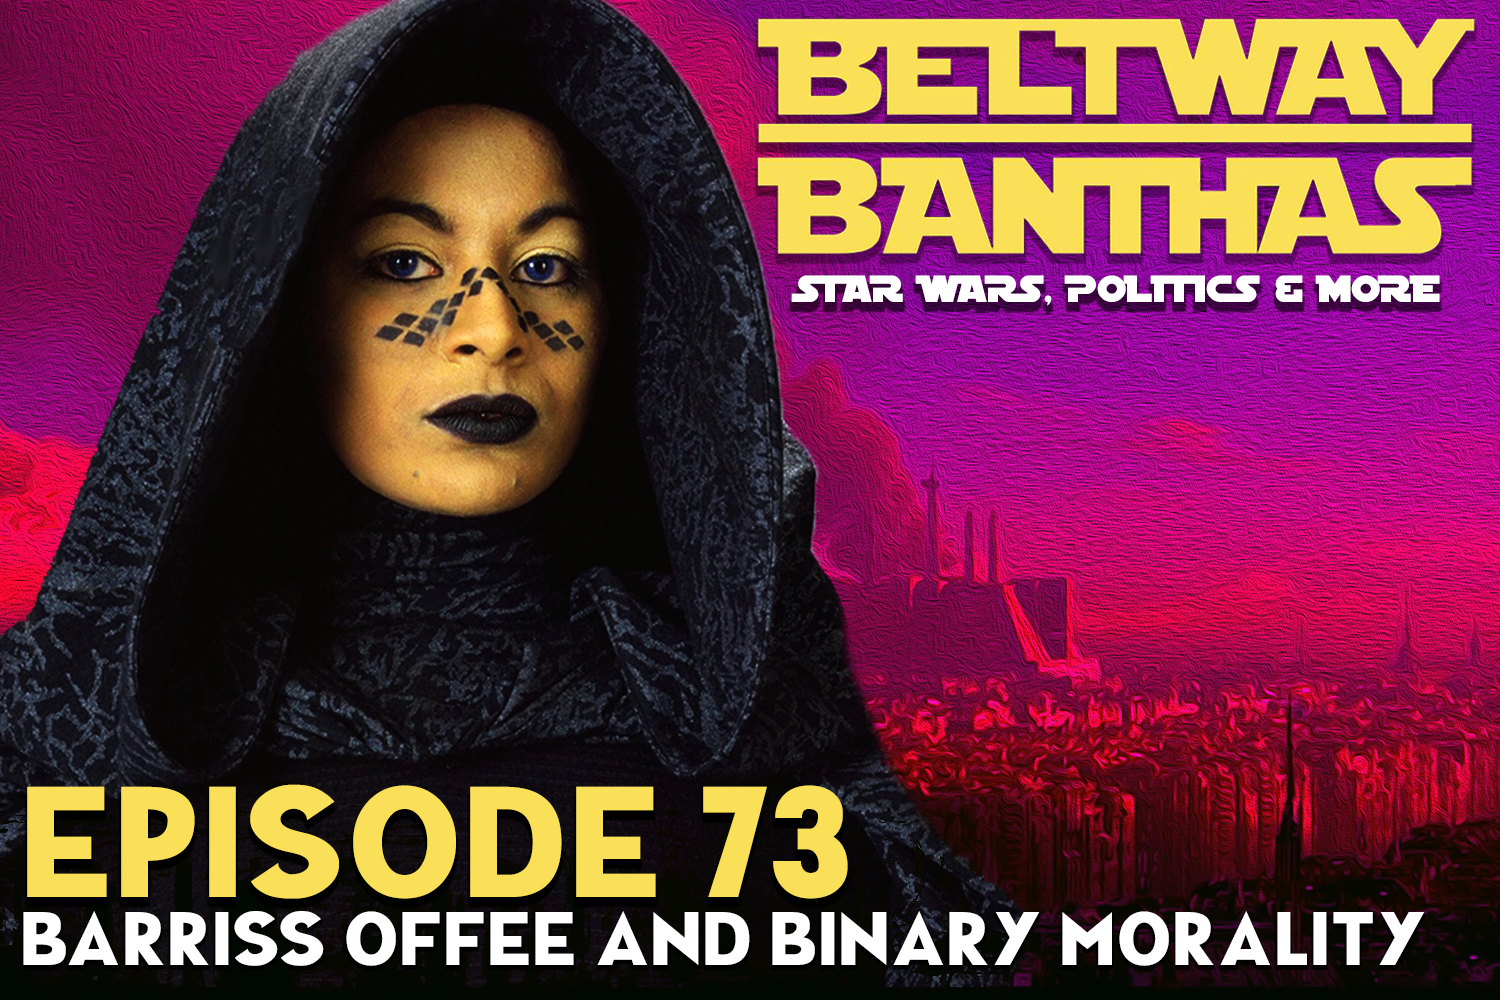 Beltway Banthas #73: Barriss Offee, The Clone Wars and binary morality